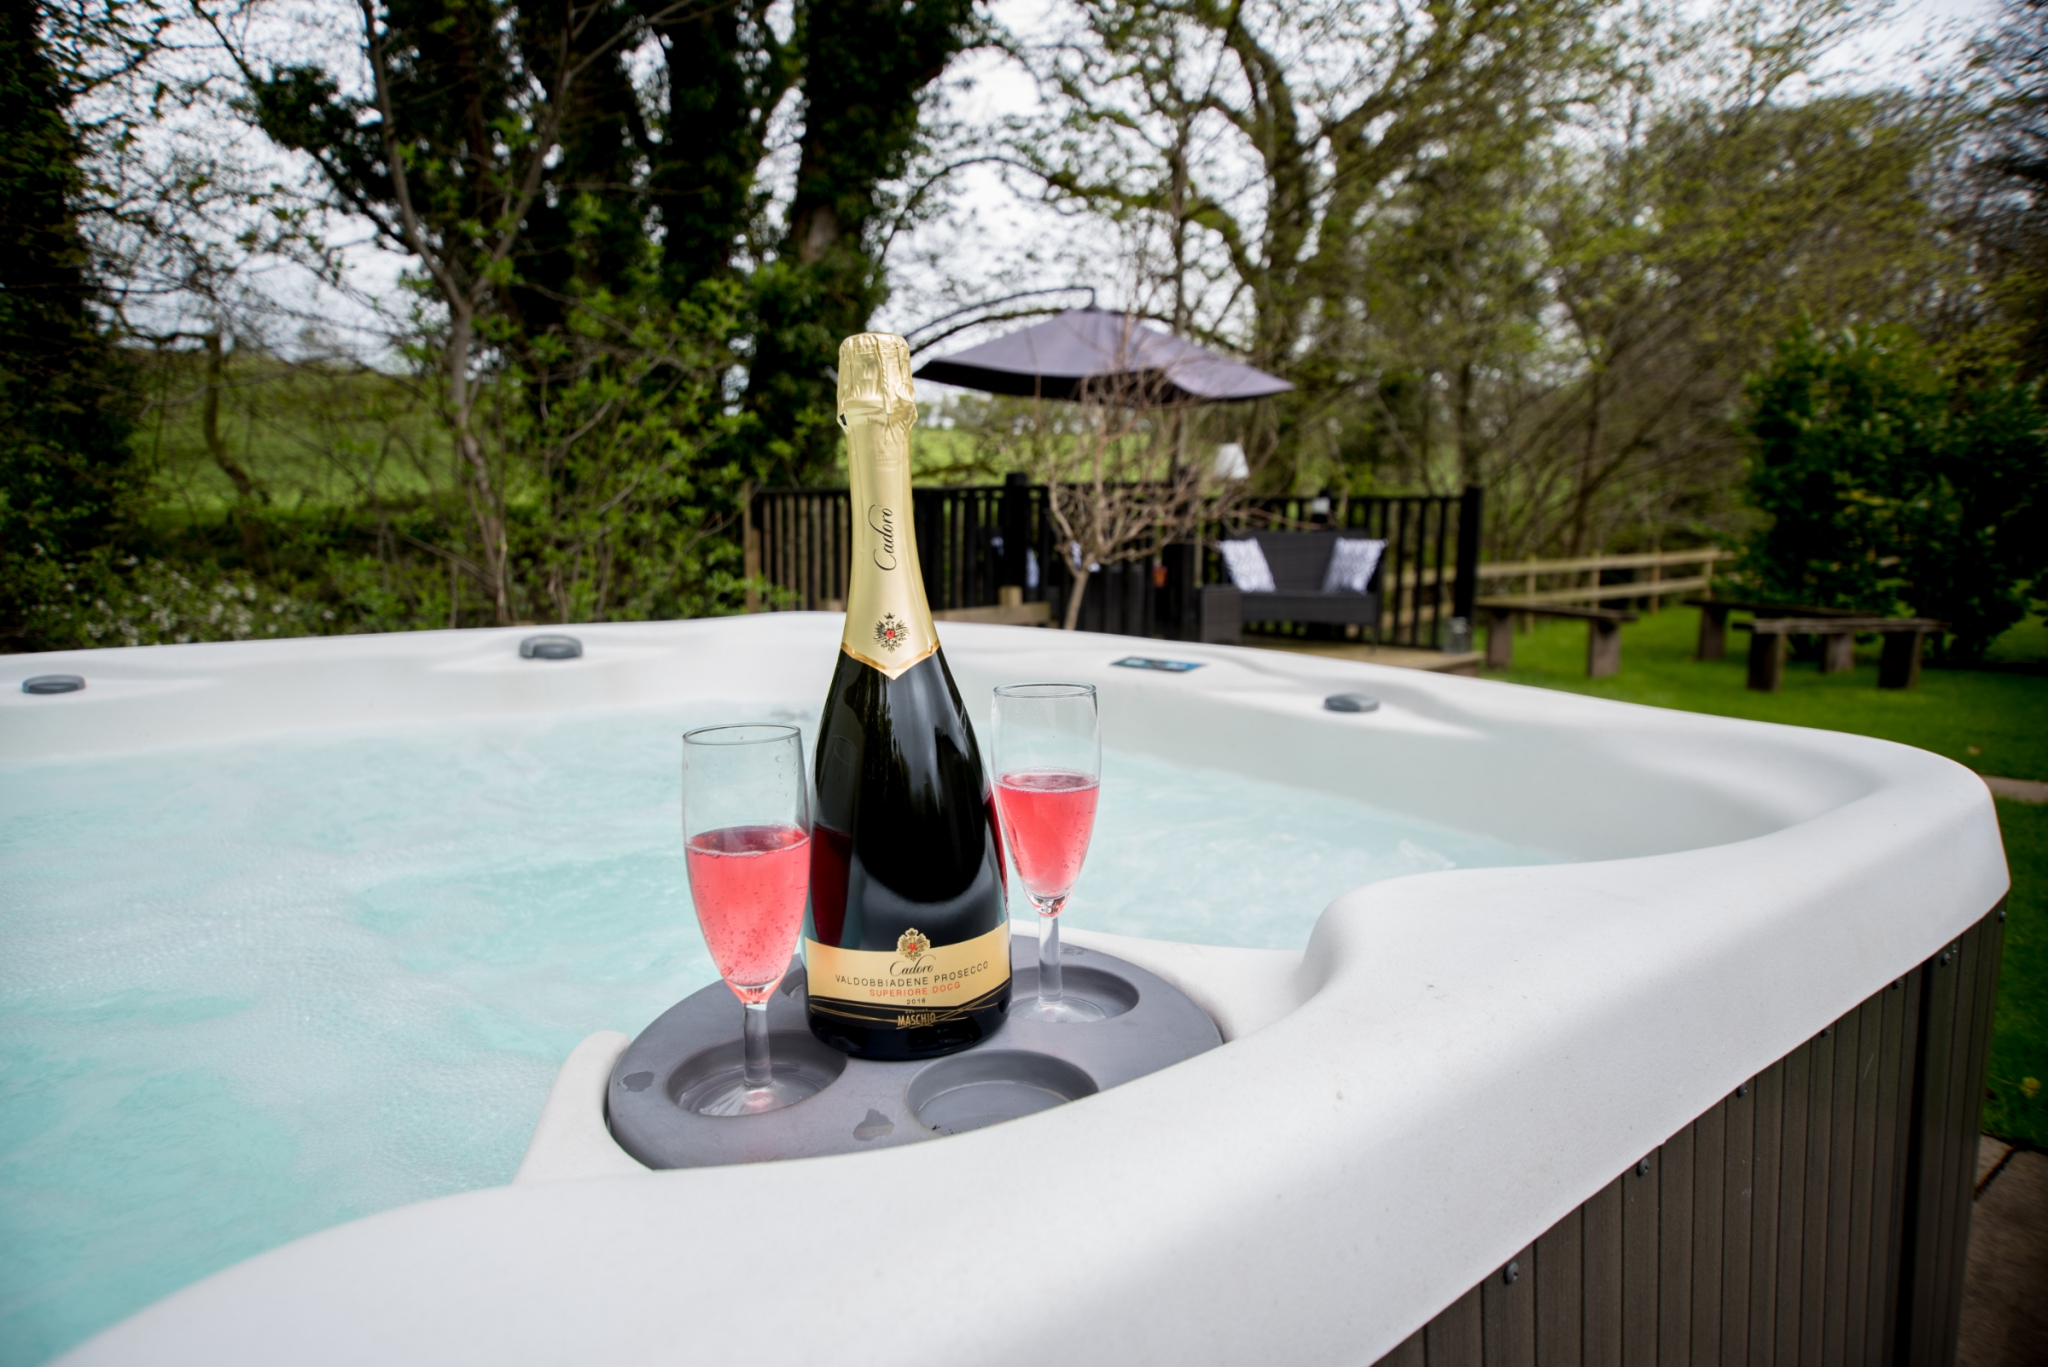 Carwinley Retreat Hot Tub & Prosecco